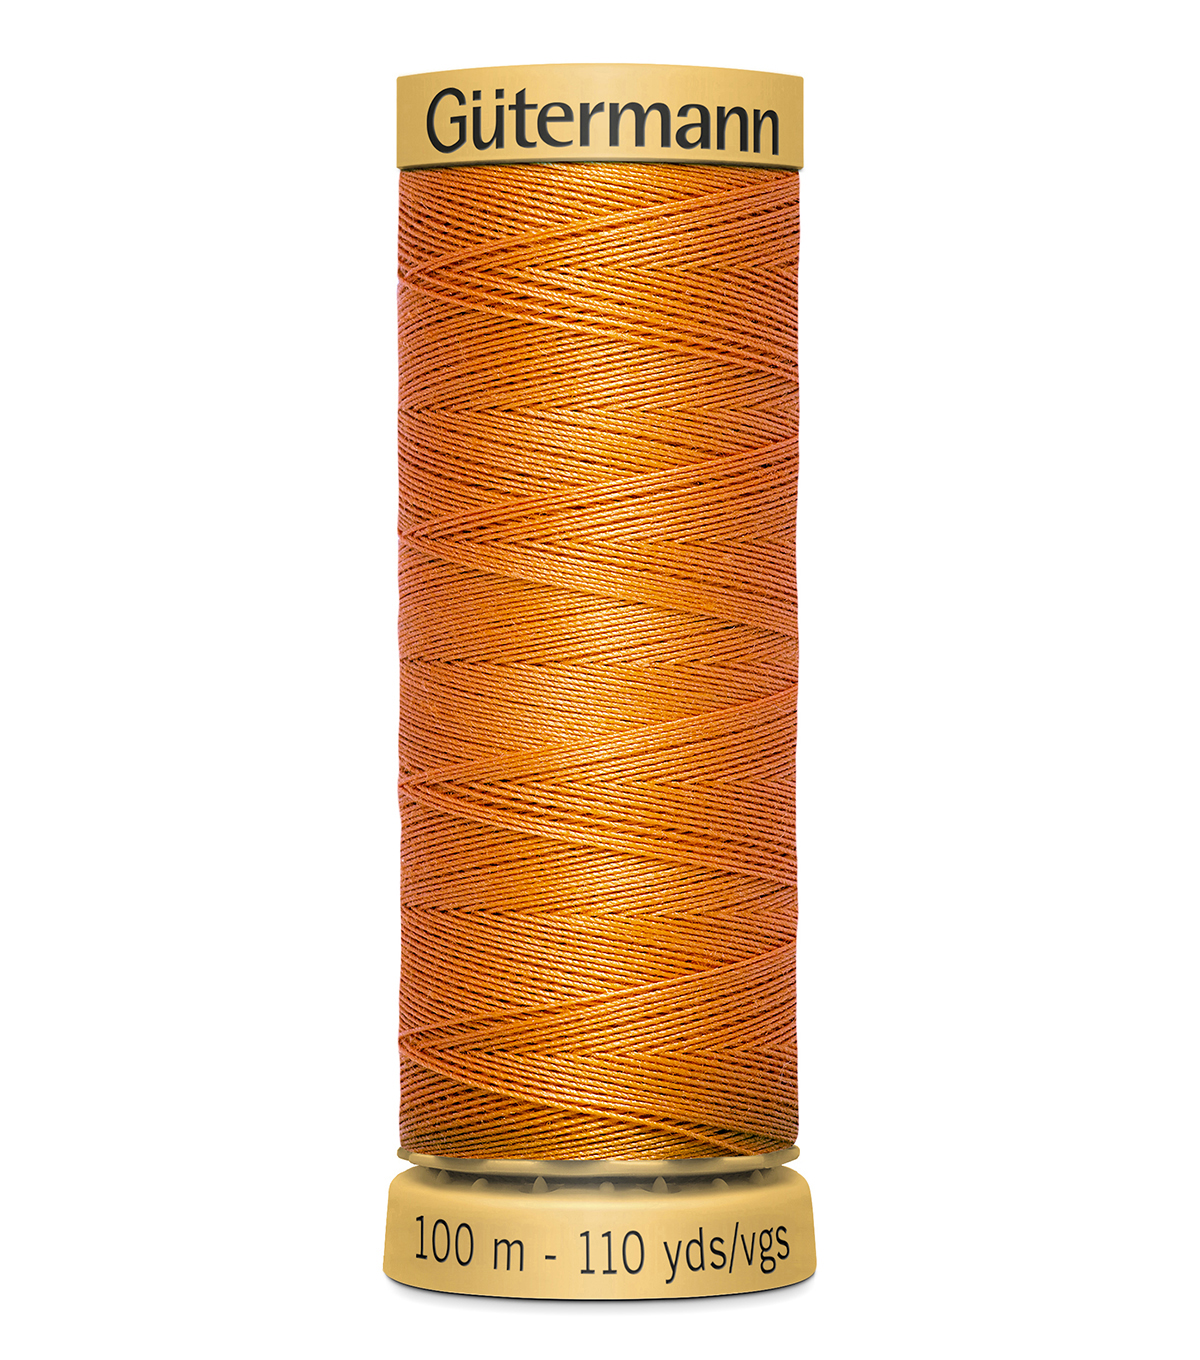 Gutermann Sew All Polyester Thread 110 Yards-Oranges & Yellows , Apricot